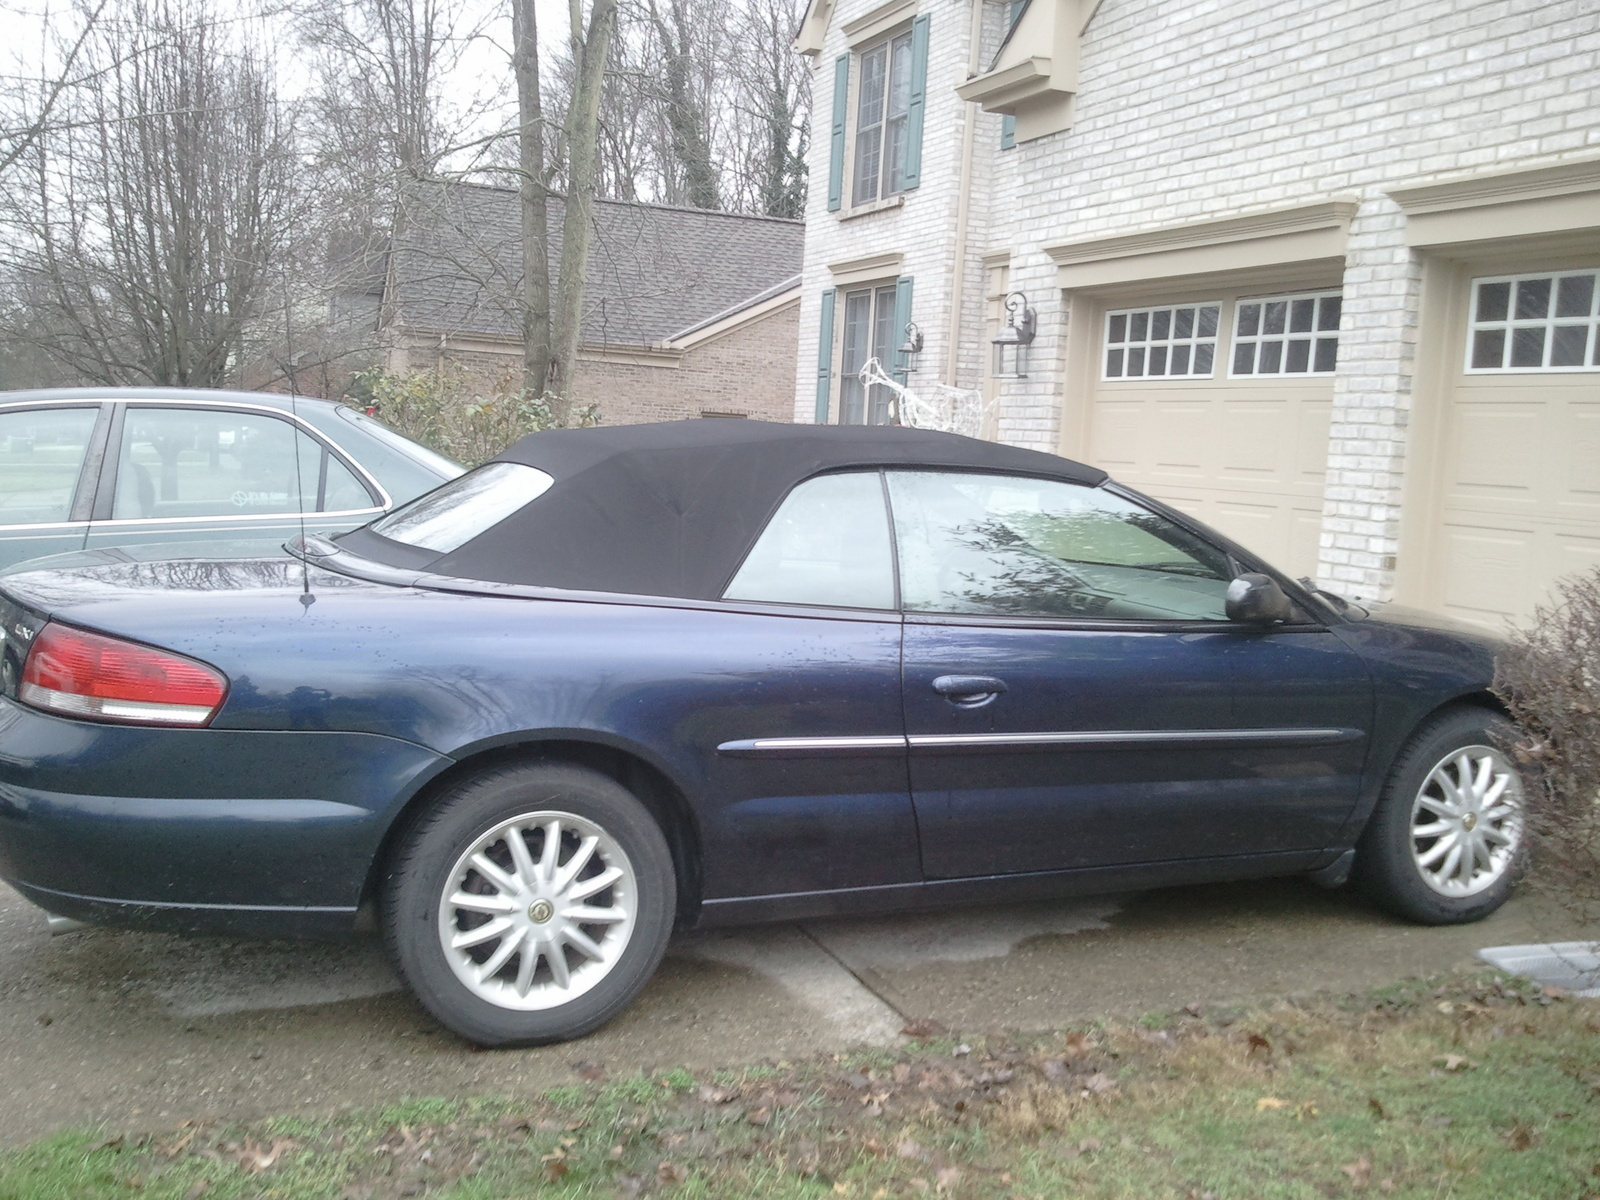 picture of 2002 chrysler sebring lxi convertible exterior. Cars Review. Best American Auto & Cars Review